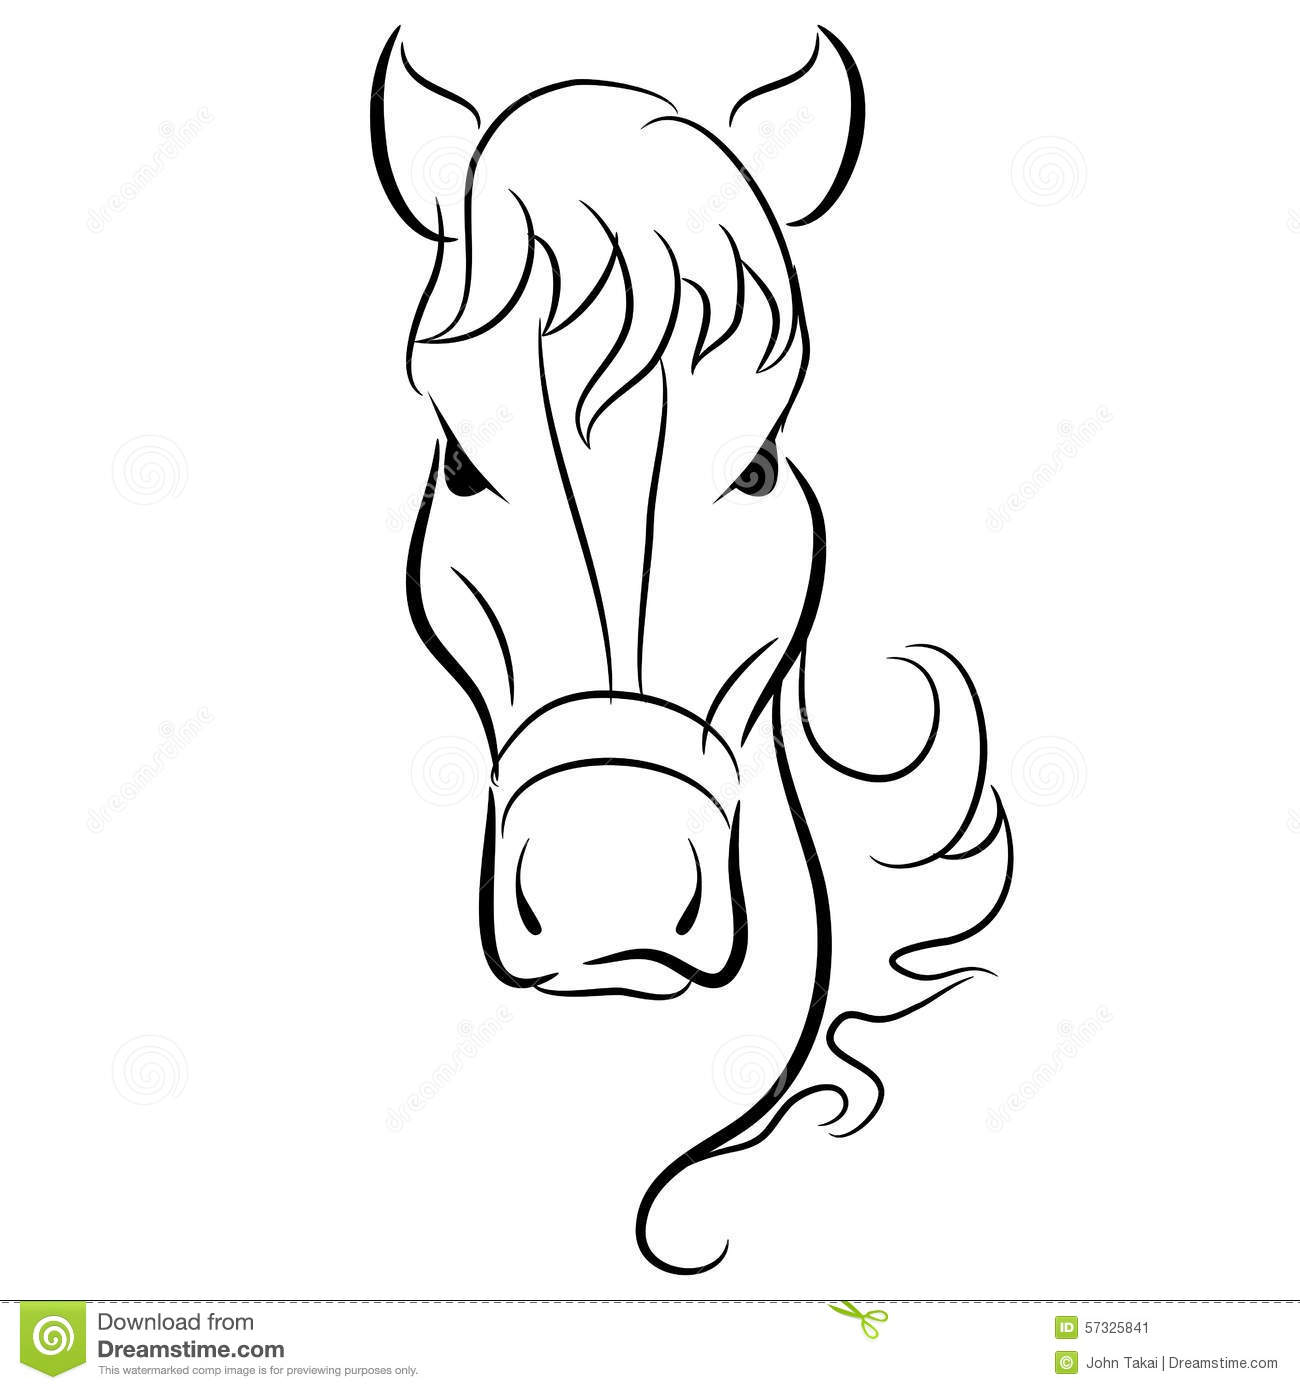 Dessin de t te de cheval illustration de vecteur illustration du t te 57325841 - Dessin de tete de cheval ...